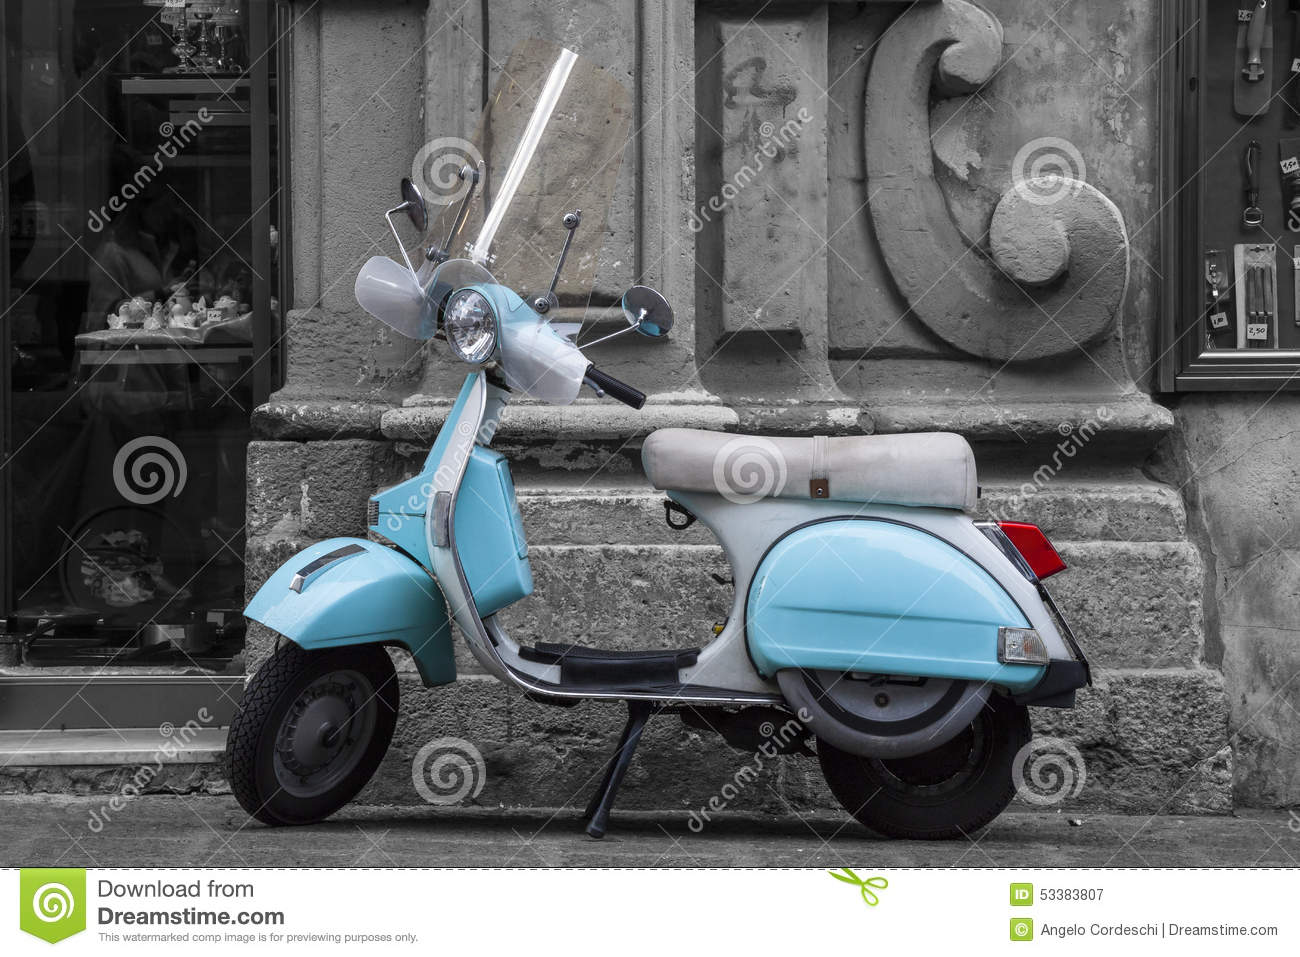 Historic Italian colored motorcycle scooter. Black and white